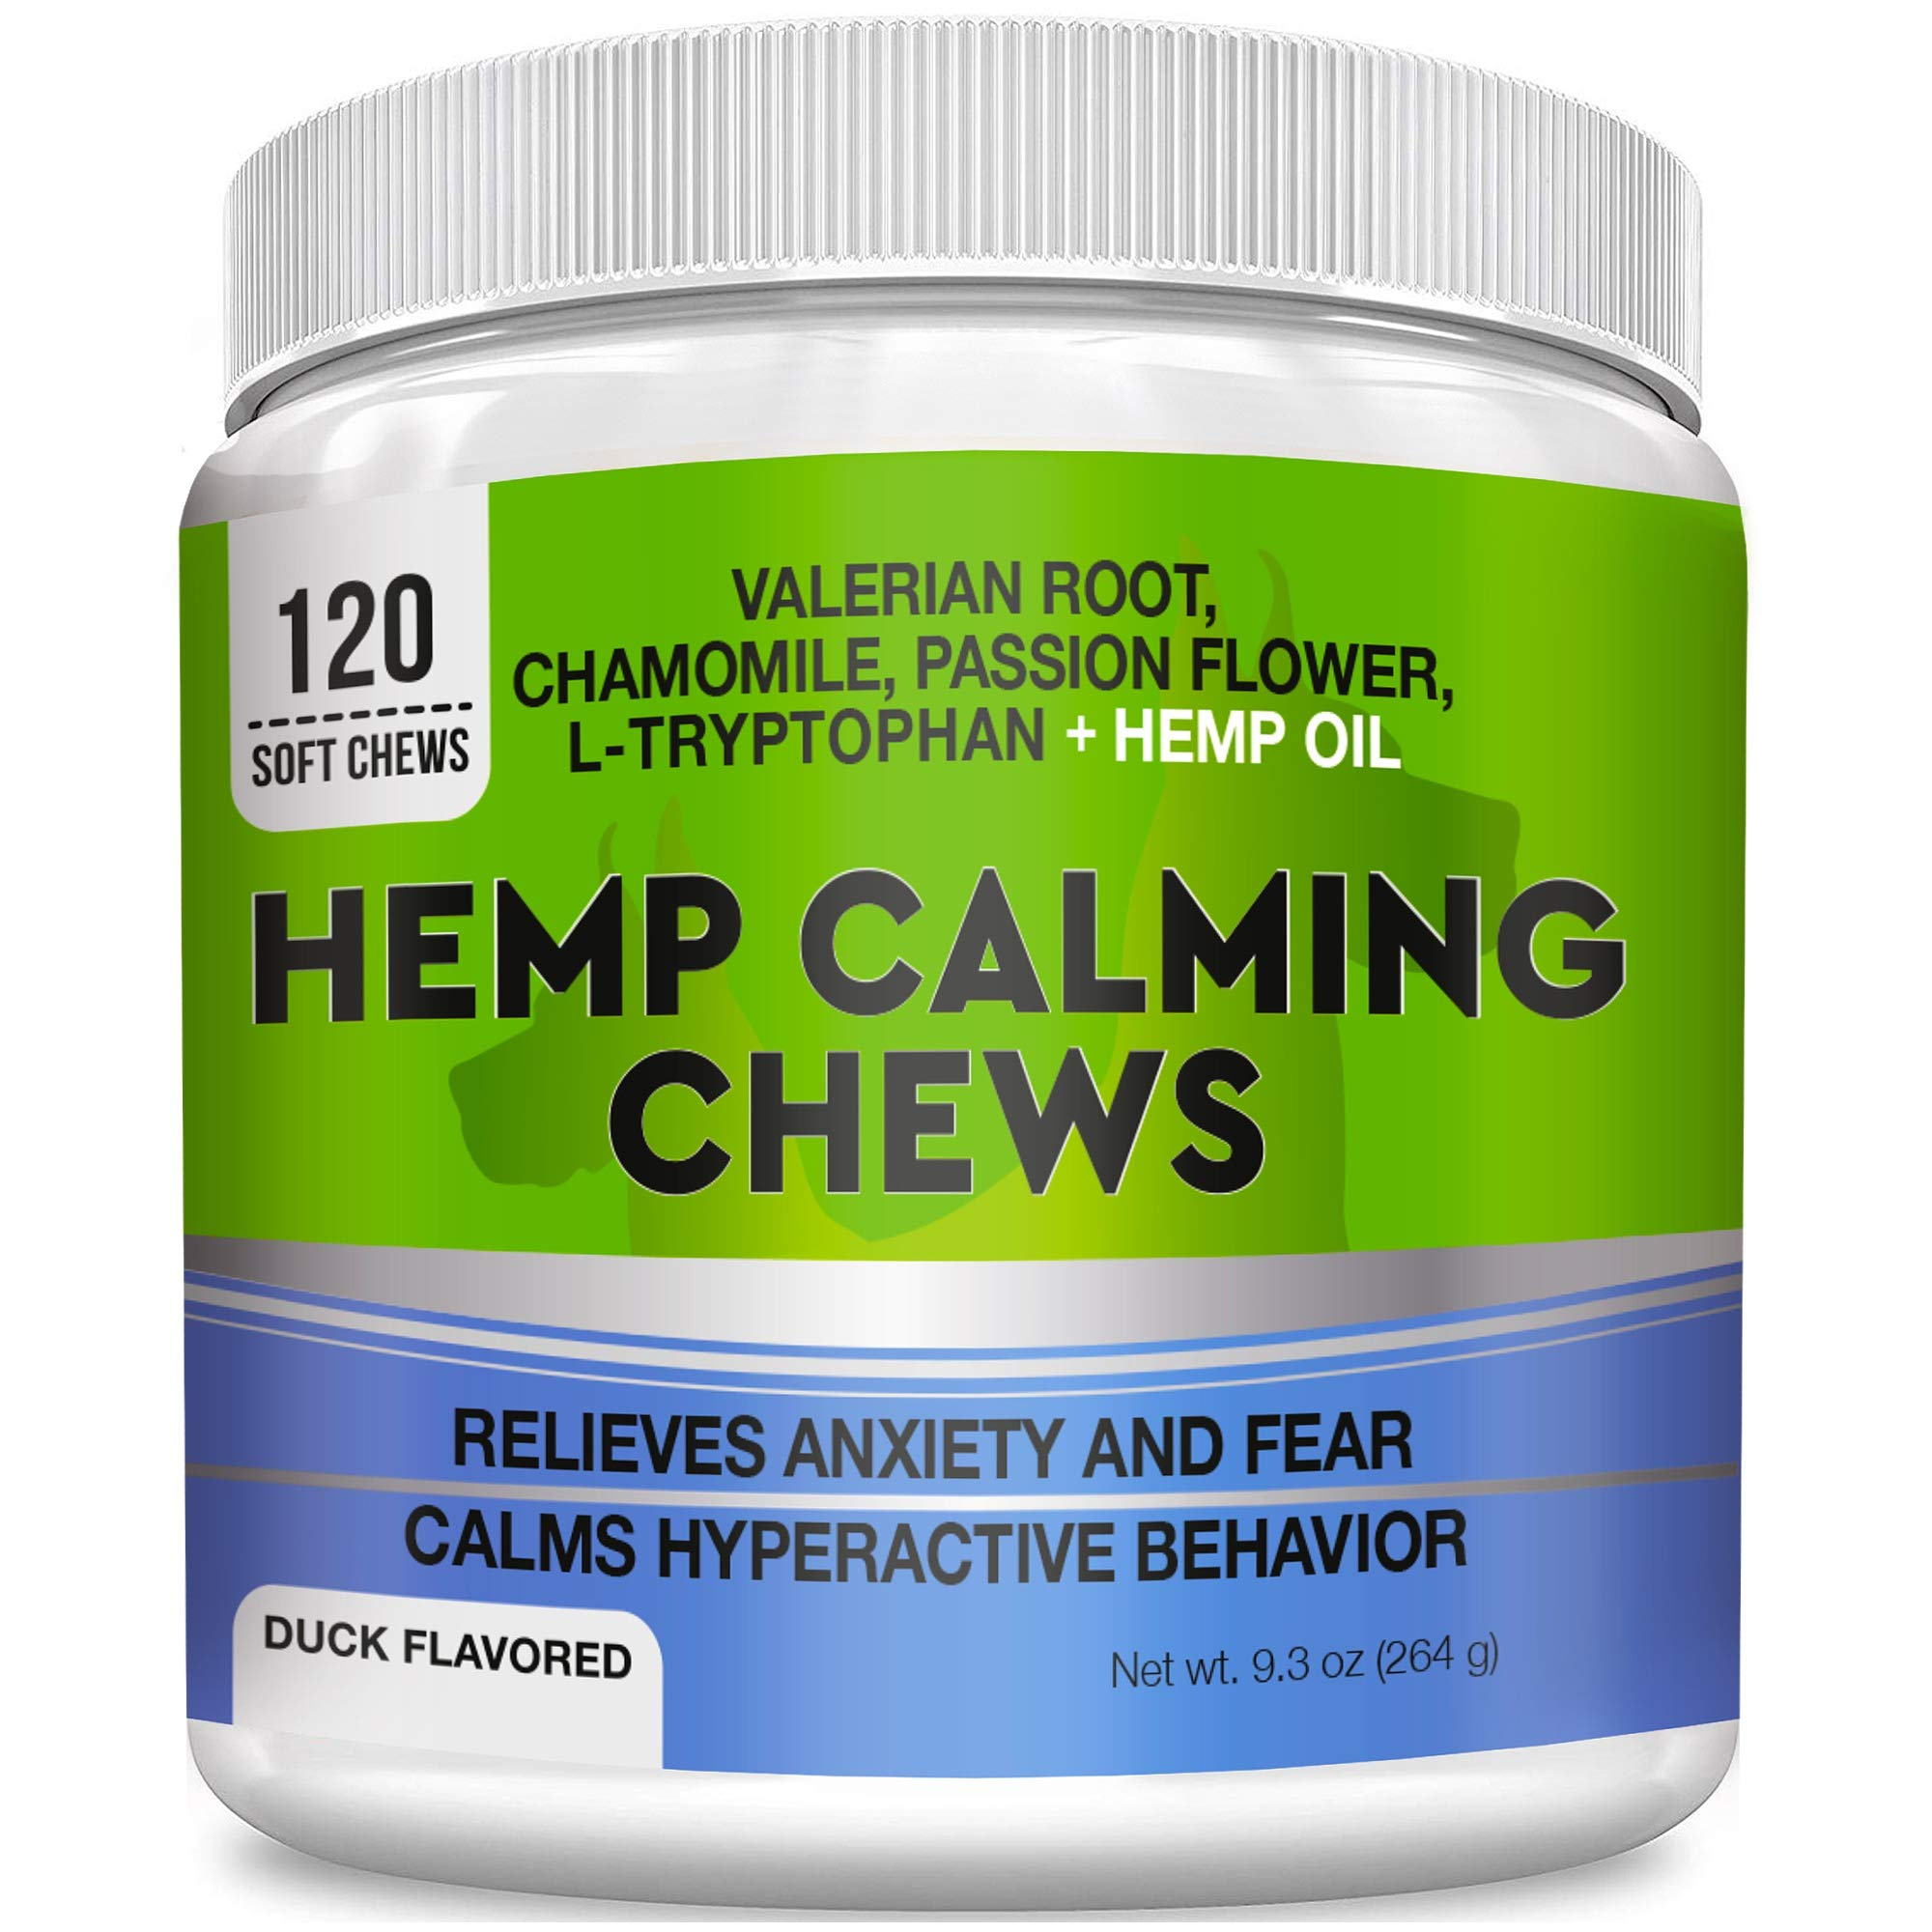 GOODGROWLIES Calming Hemp Treats for Dogs - Made in USA with Hemp Oil - Anxiety Relief - Separation Aid - Stress Relief During Fireworks, Storms, Thunder - Aggressive Behavior, Barking - 120 Chews by GOODGROWLIES